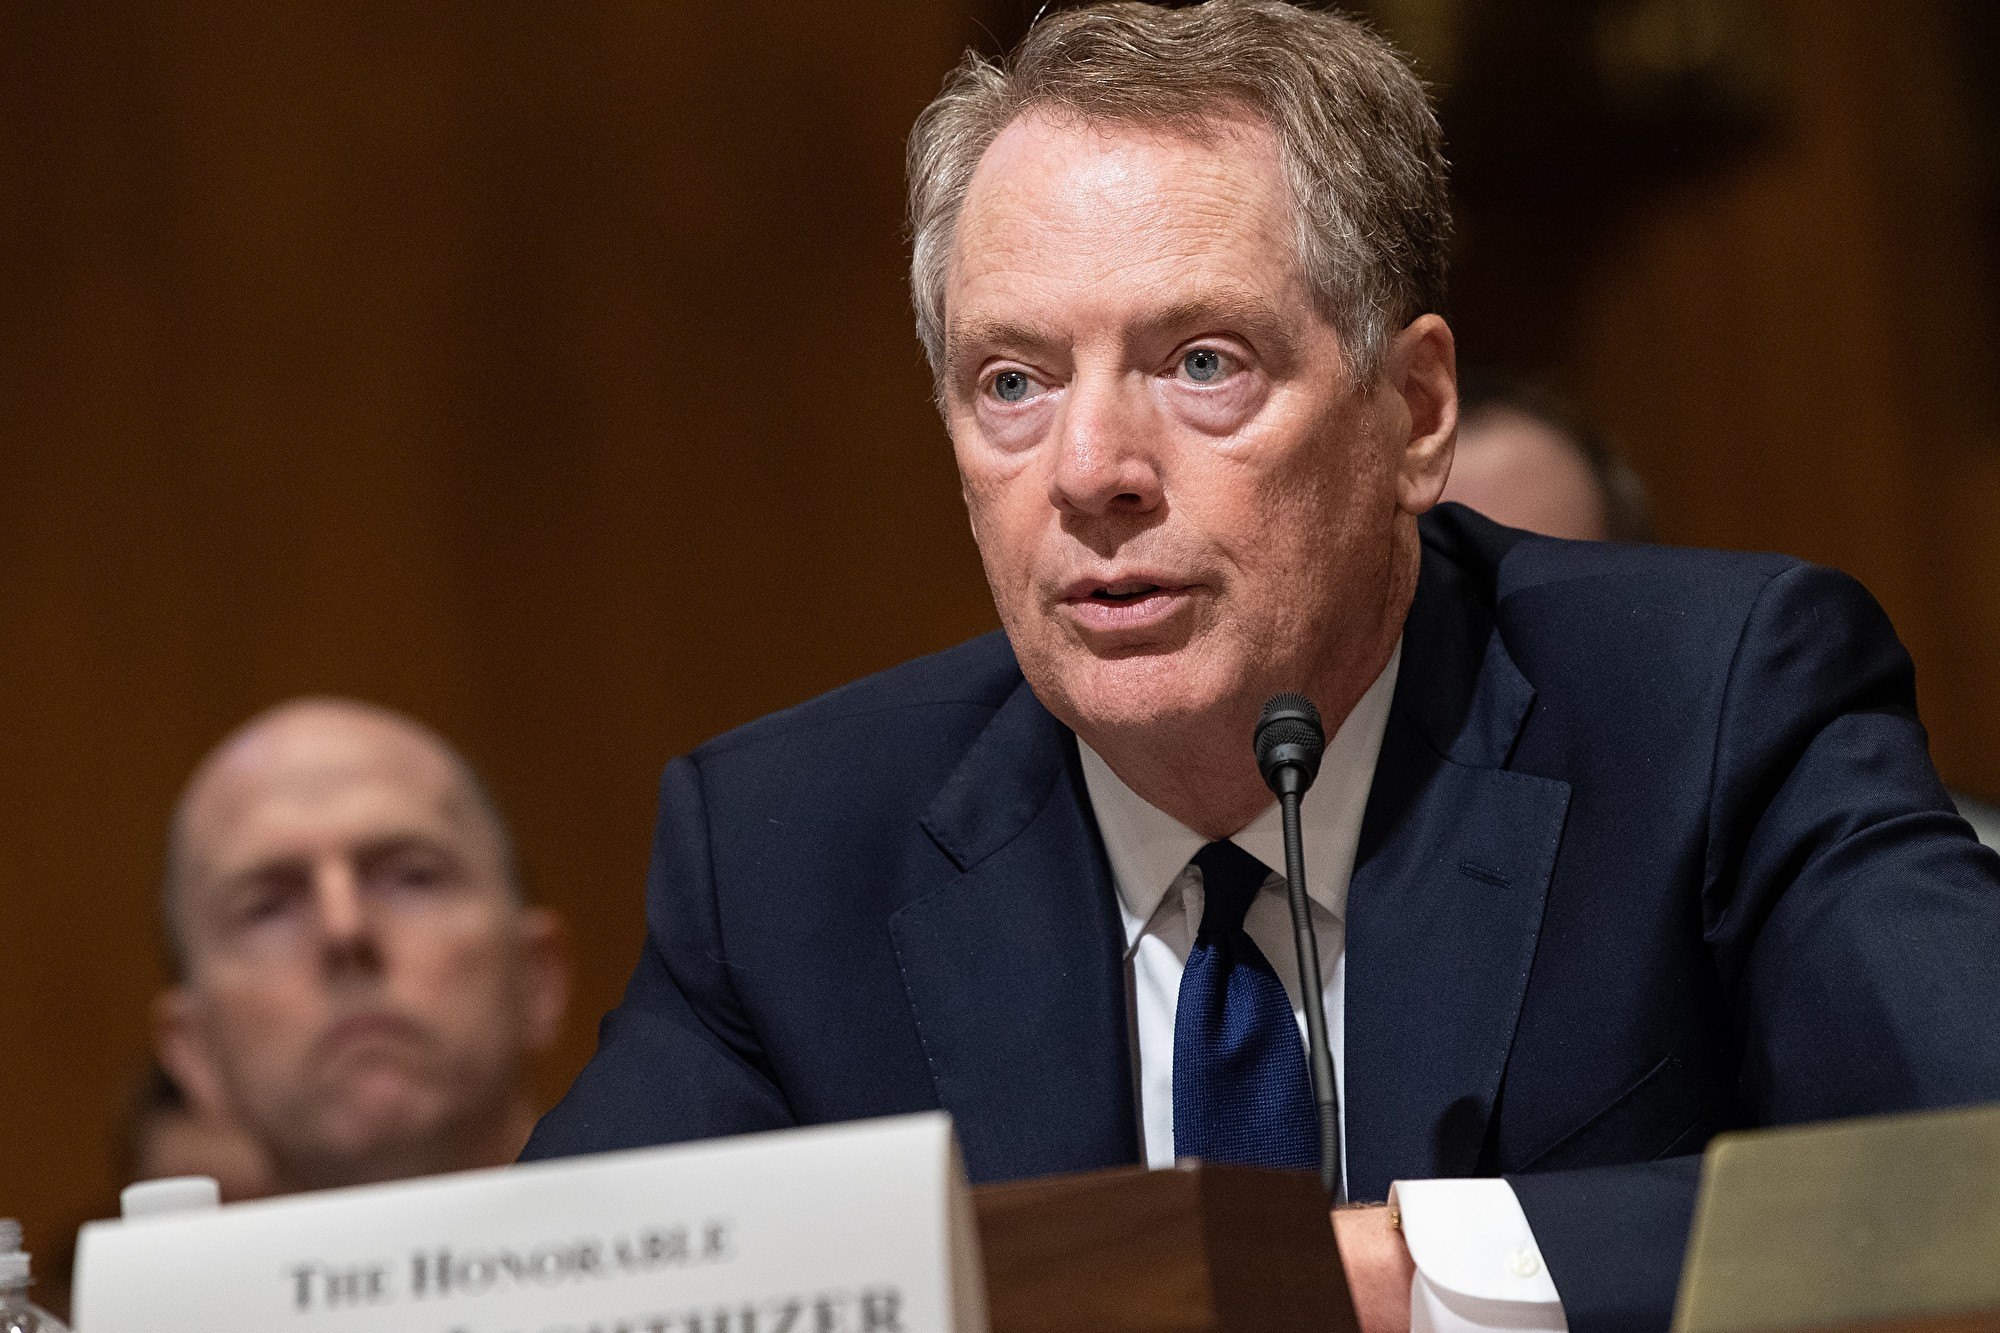 圖為美國貿易代表羅伯特·萊特希澤(Robert Lighthizer)。(NICHOLAS KAMM/AFP via Getty Images)